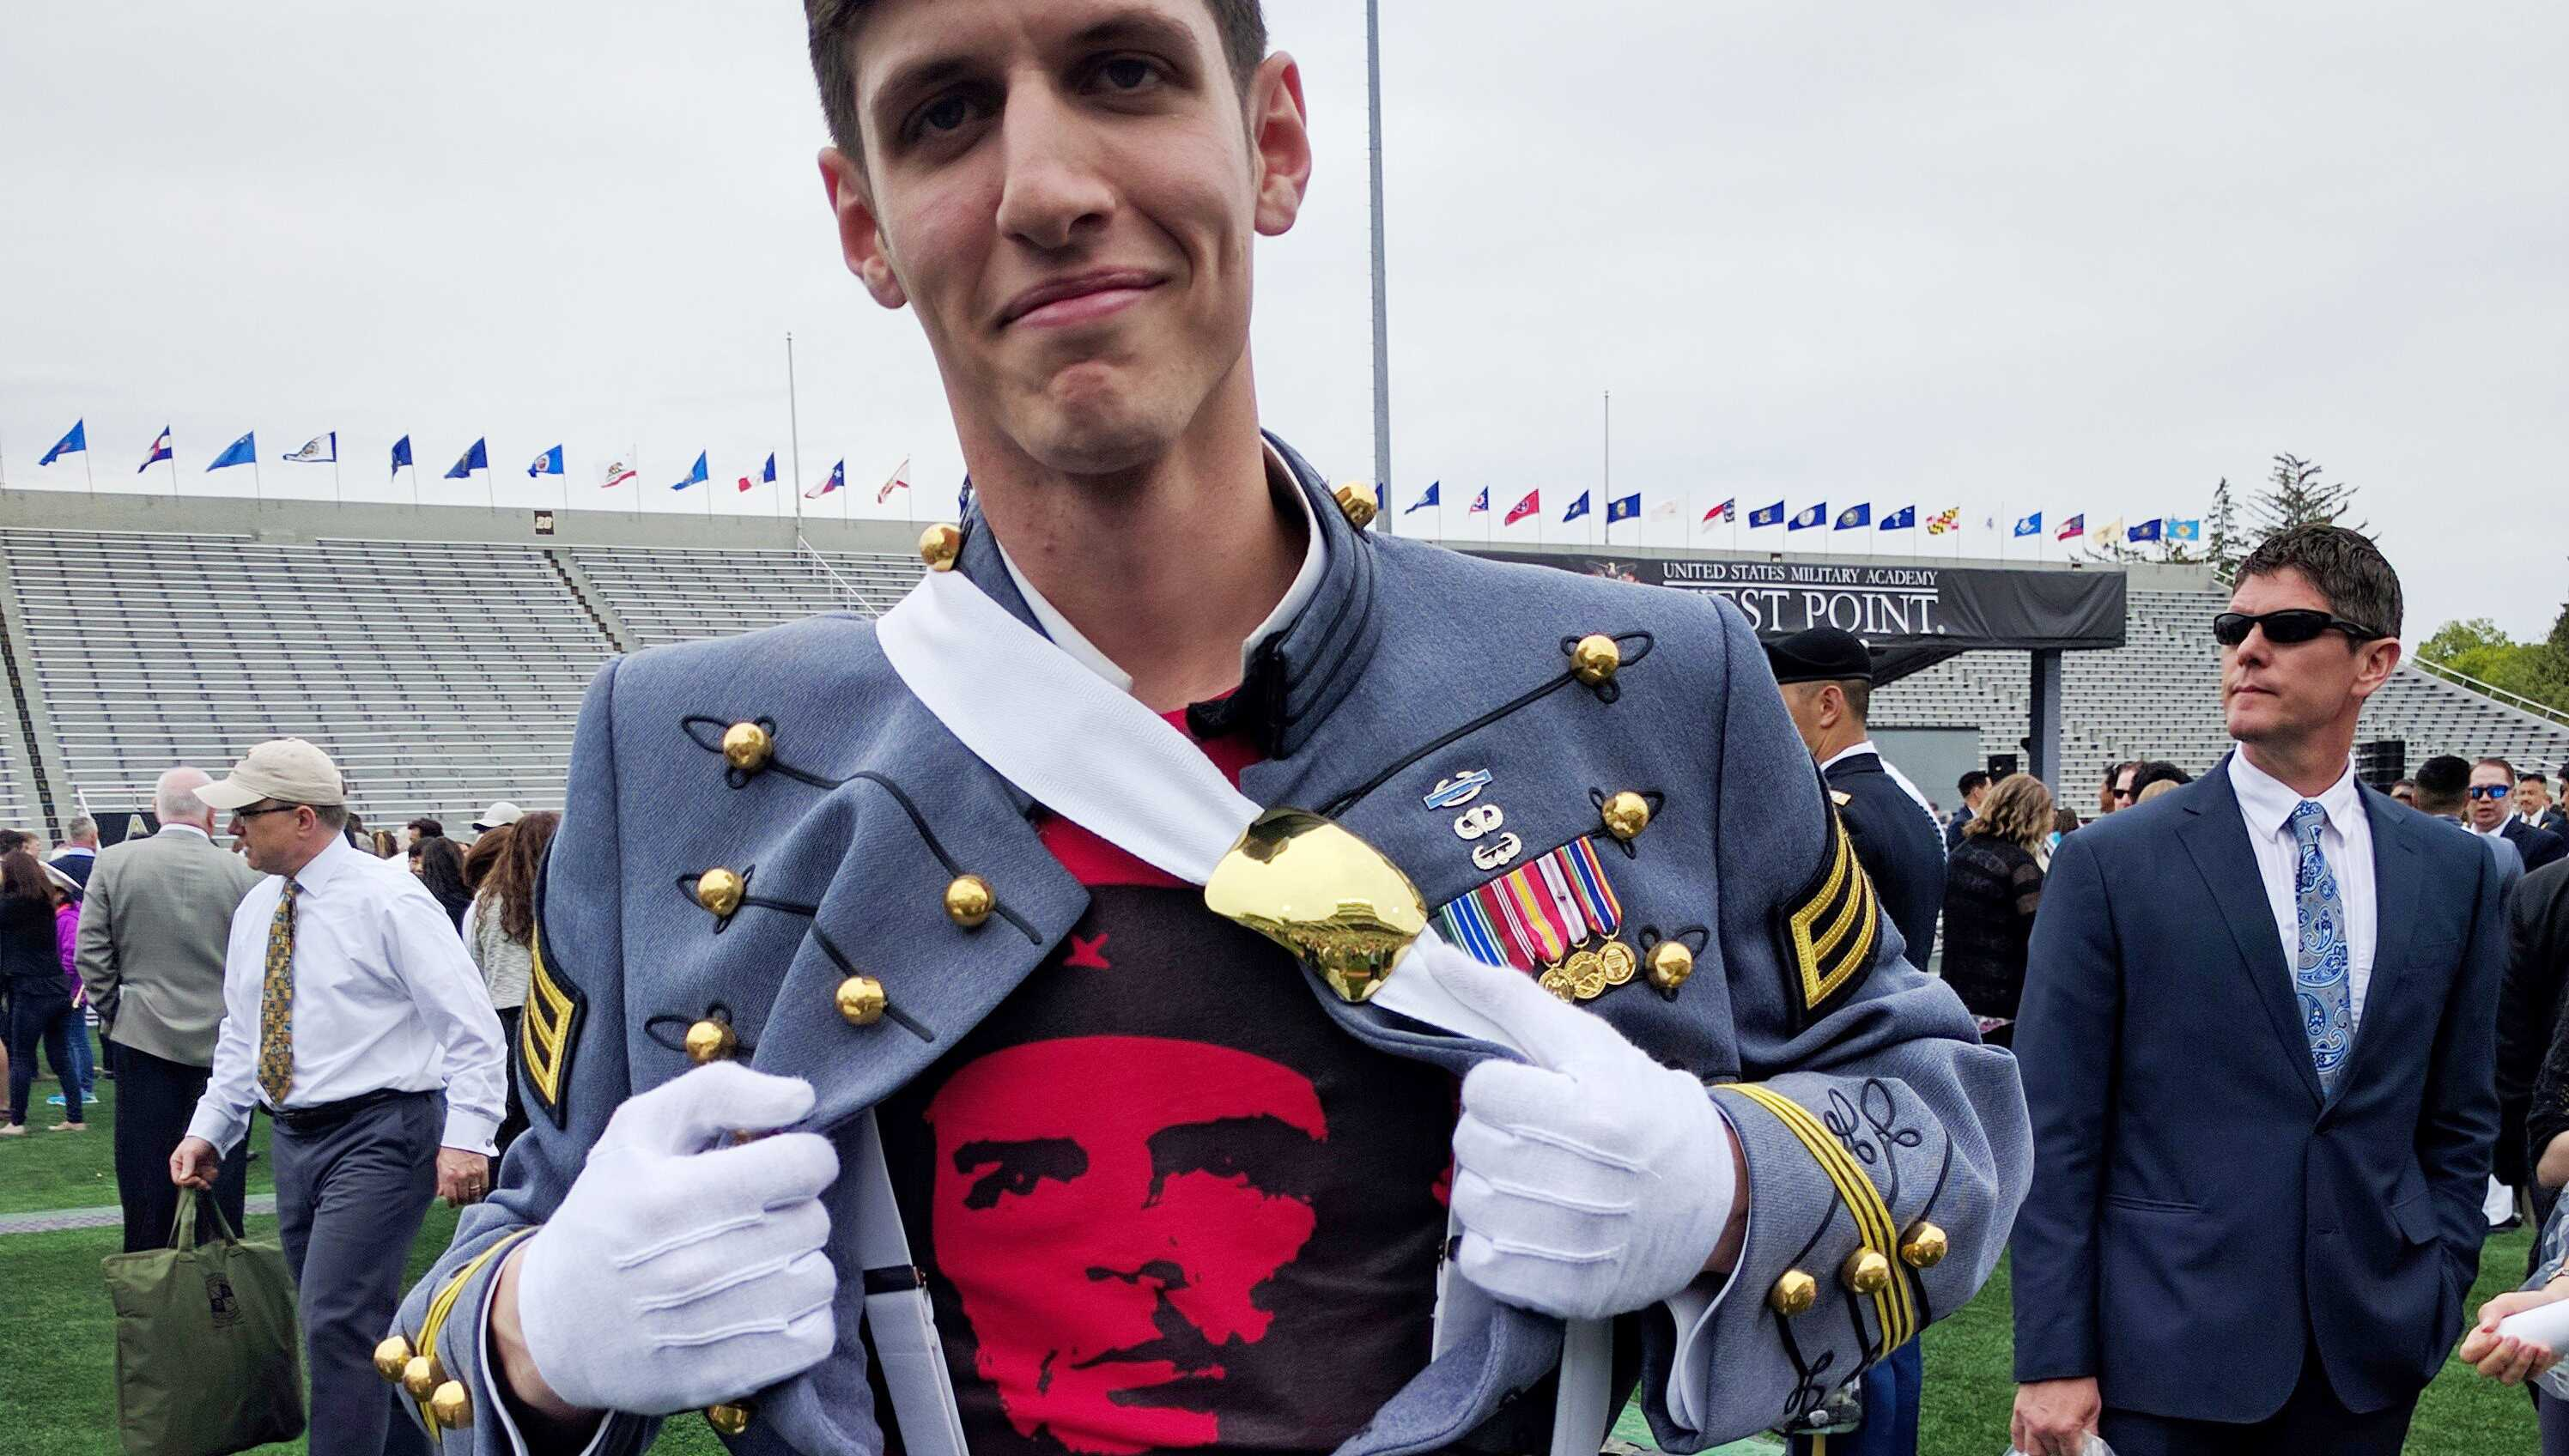 In this May 2016 photo provided by Spenser Rapone, Rapone displays a shirt bearing the image of socialist icon Che Guevara under his uniform, after graduating from the United States Military Academy at West Point, N.Y.